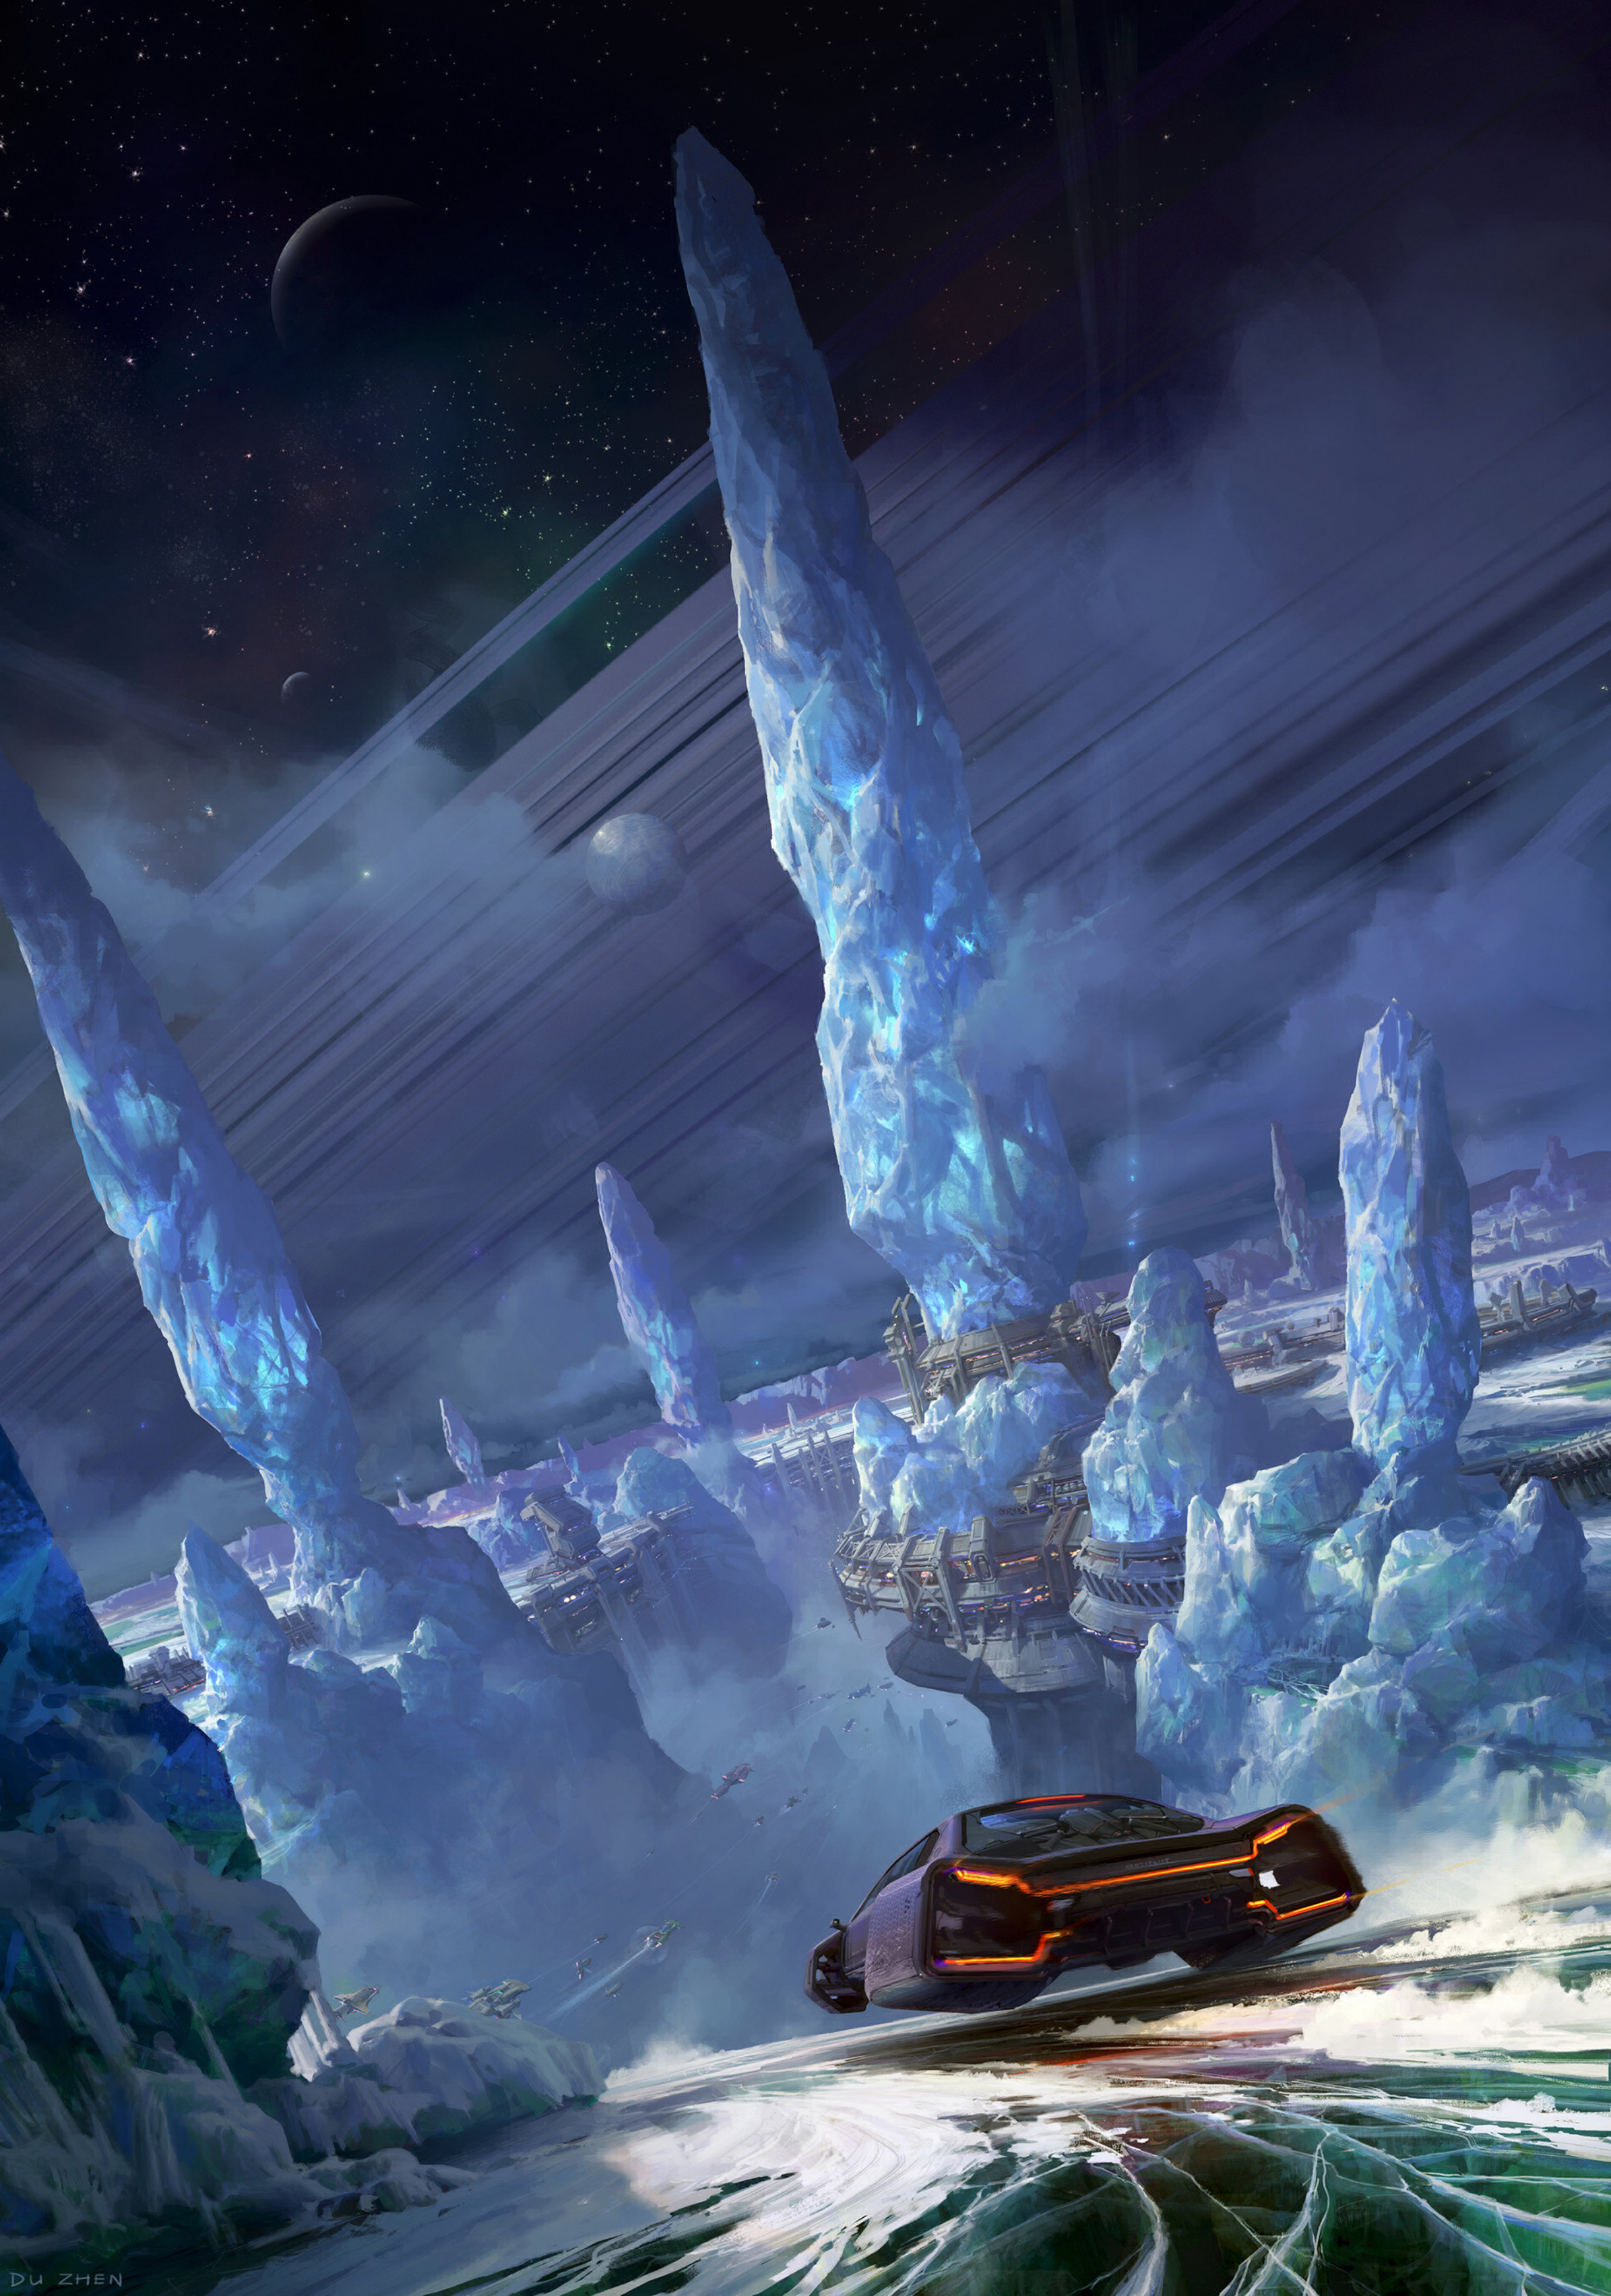 Best Sci-Fi wallpapers for phone screen